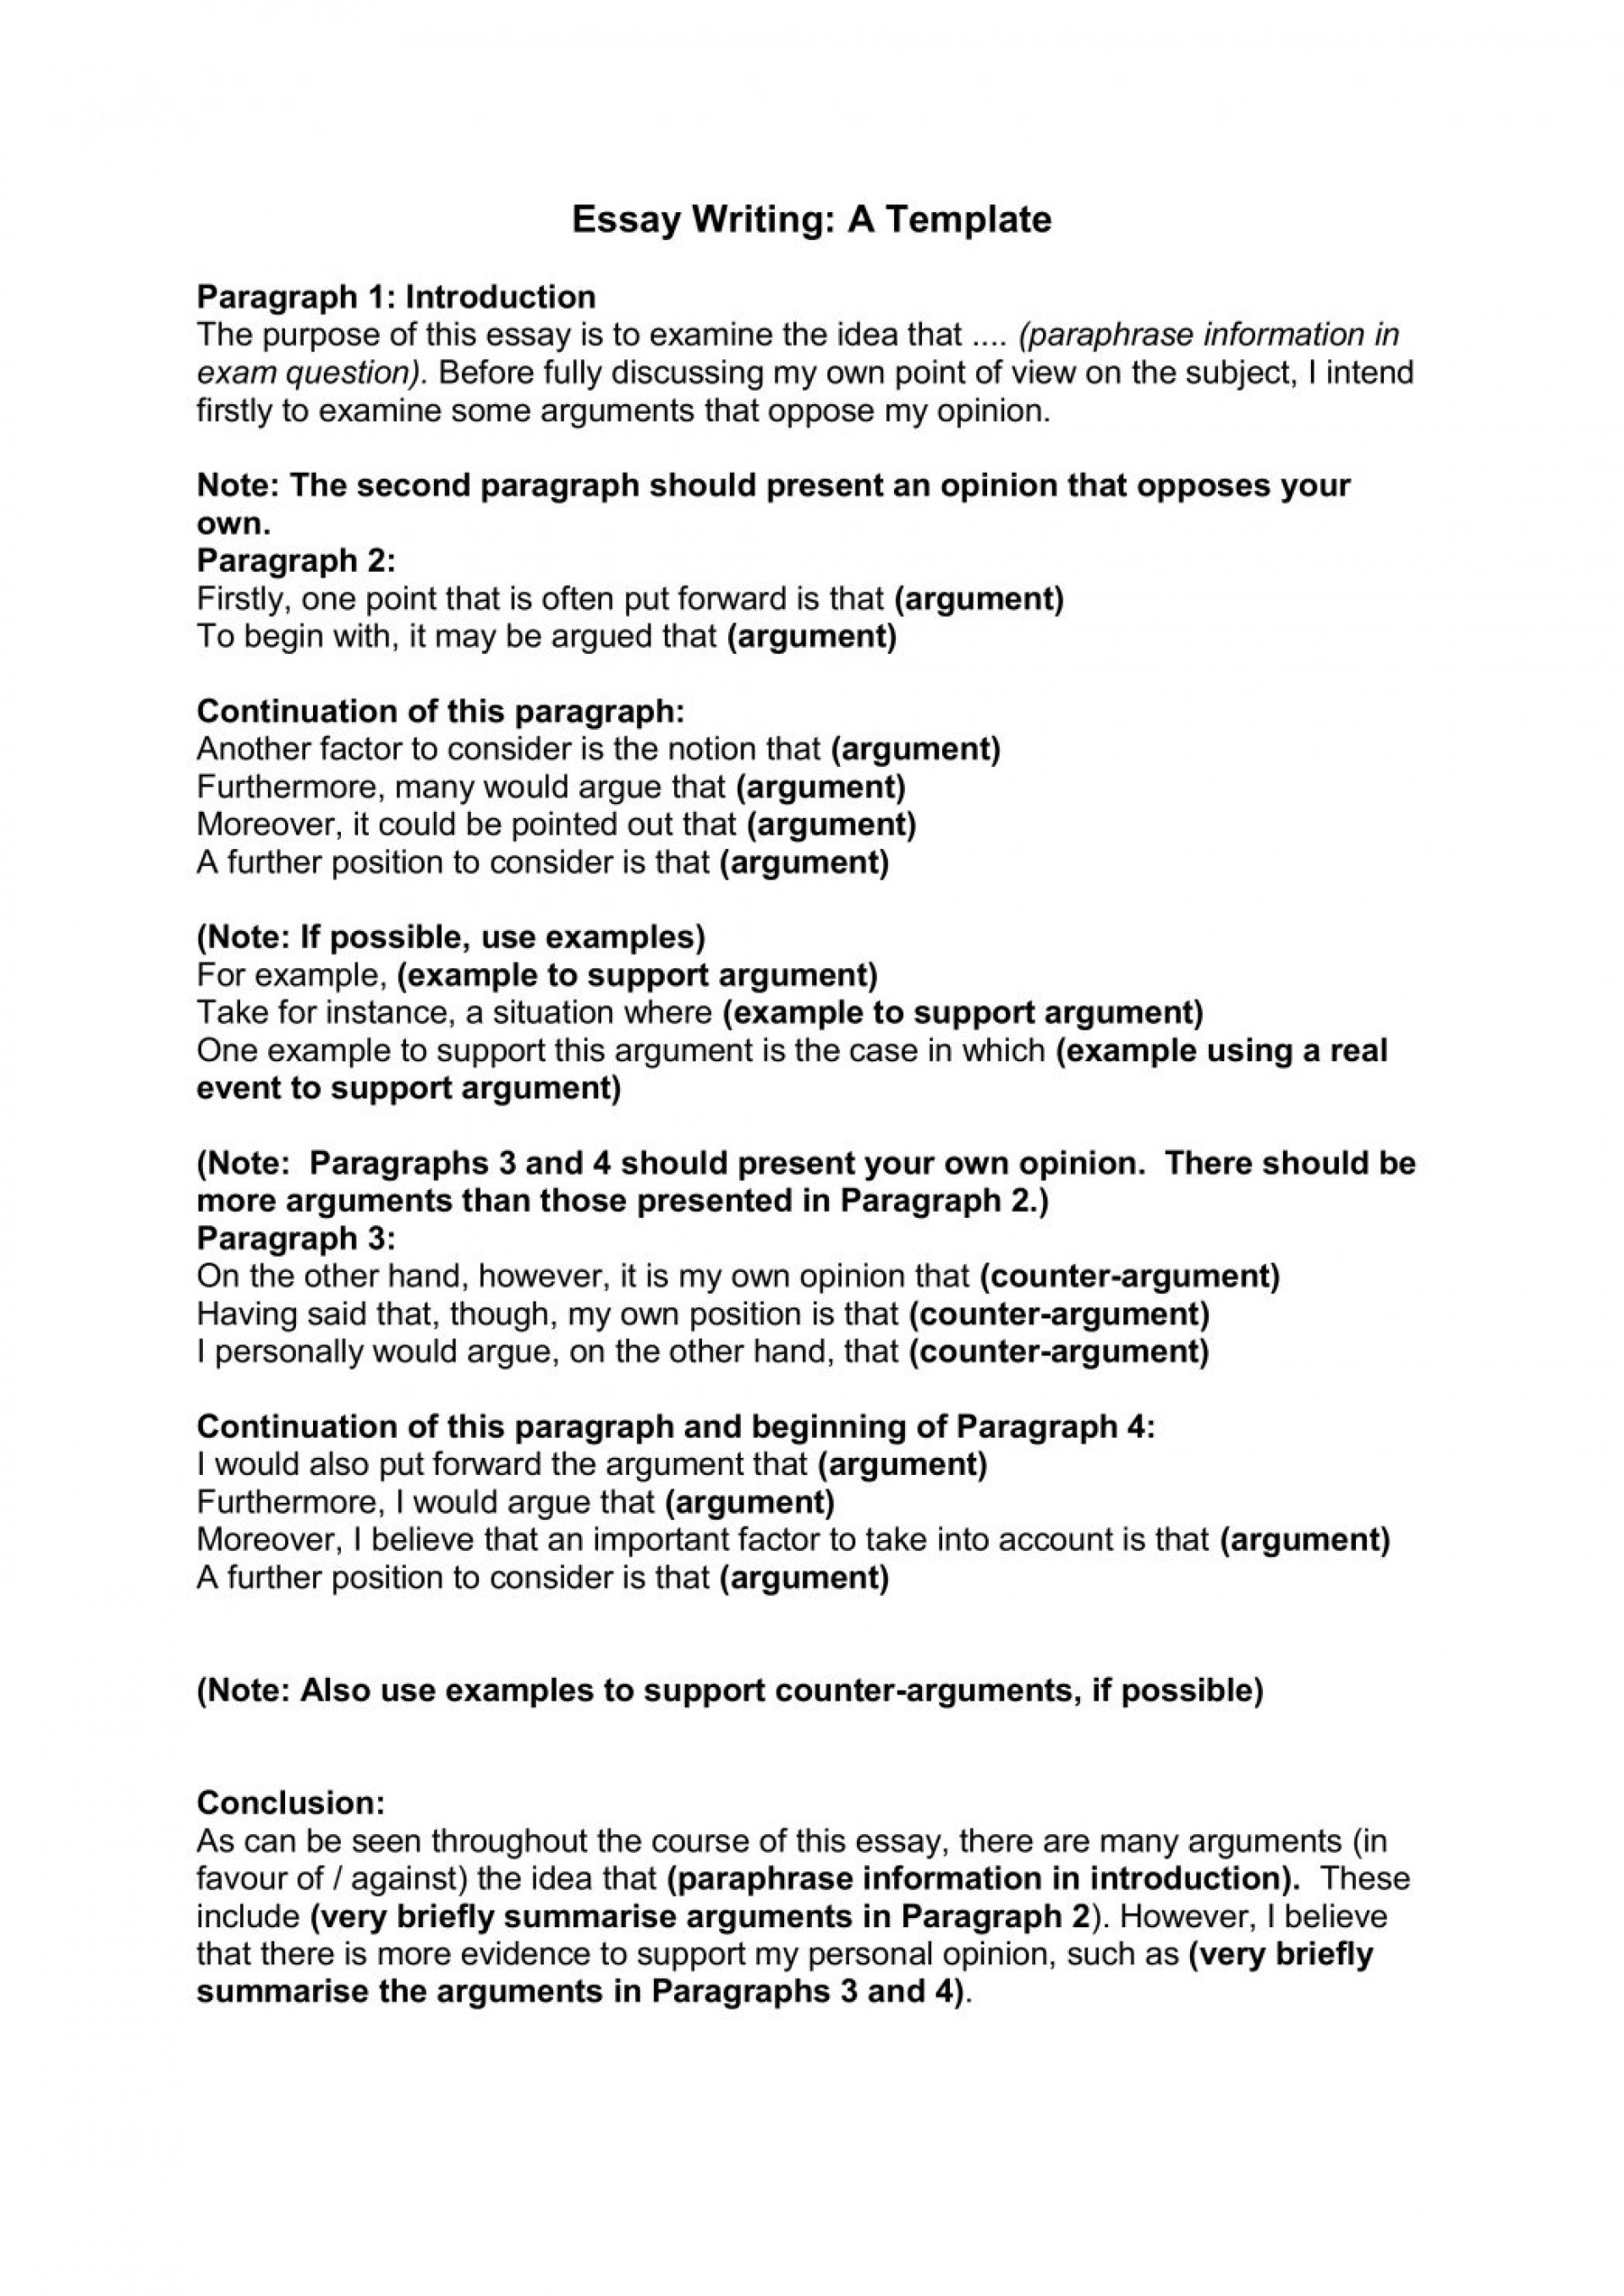 011 Opinion Essays Essay An Learnenglish Teens How To Write Esl Writing Template For P Simple Example In Ielts Introduction Balanced Persuasive Legal Successful 1048x1482 Shocking Argumentative 5th Grade Video 1920